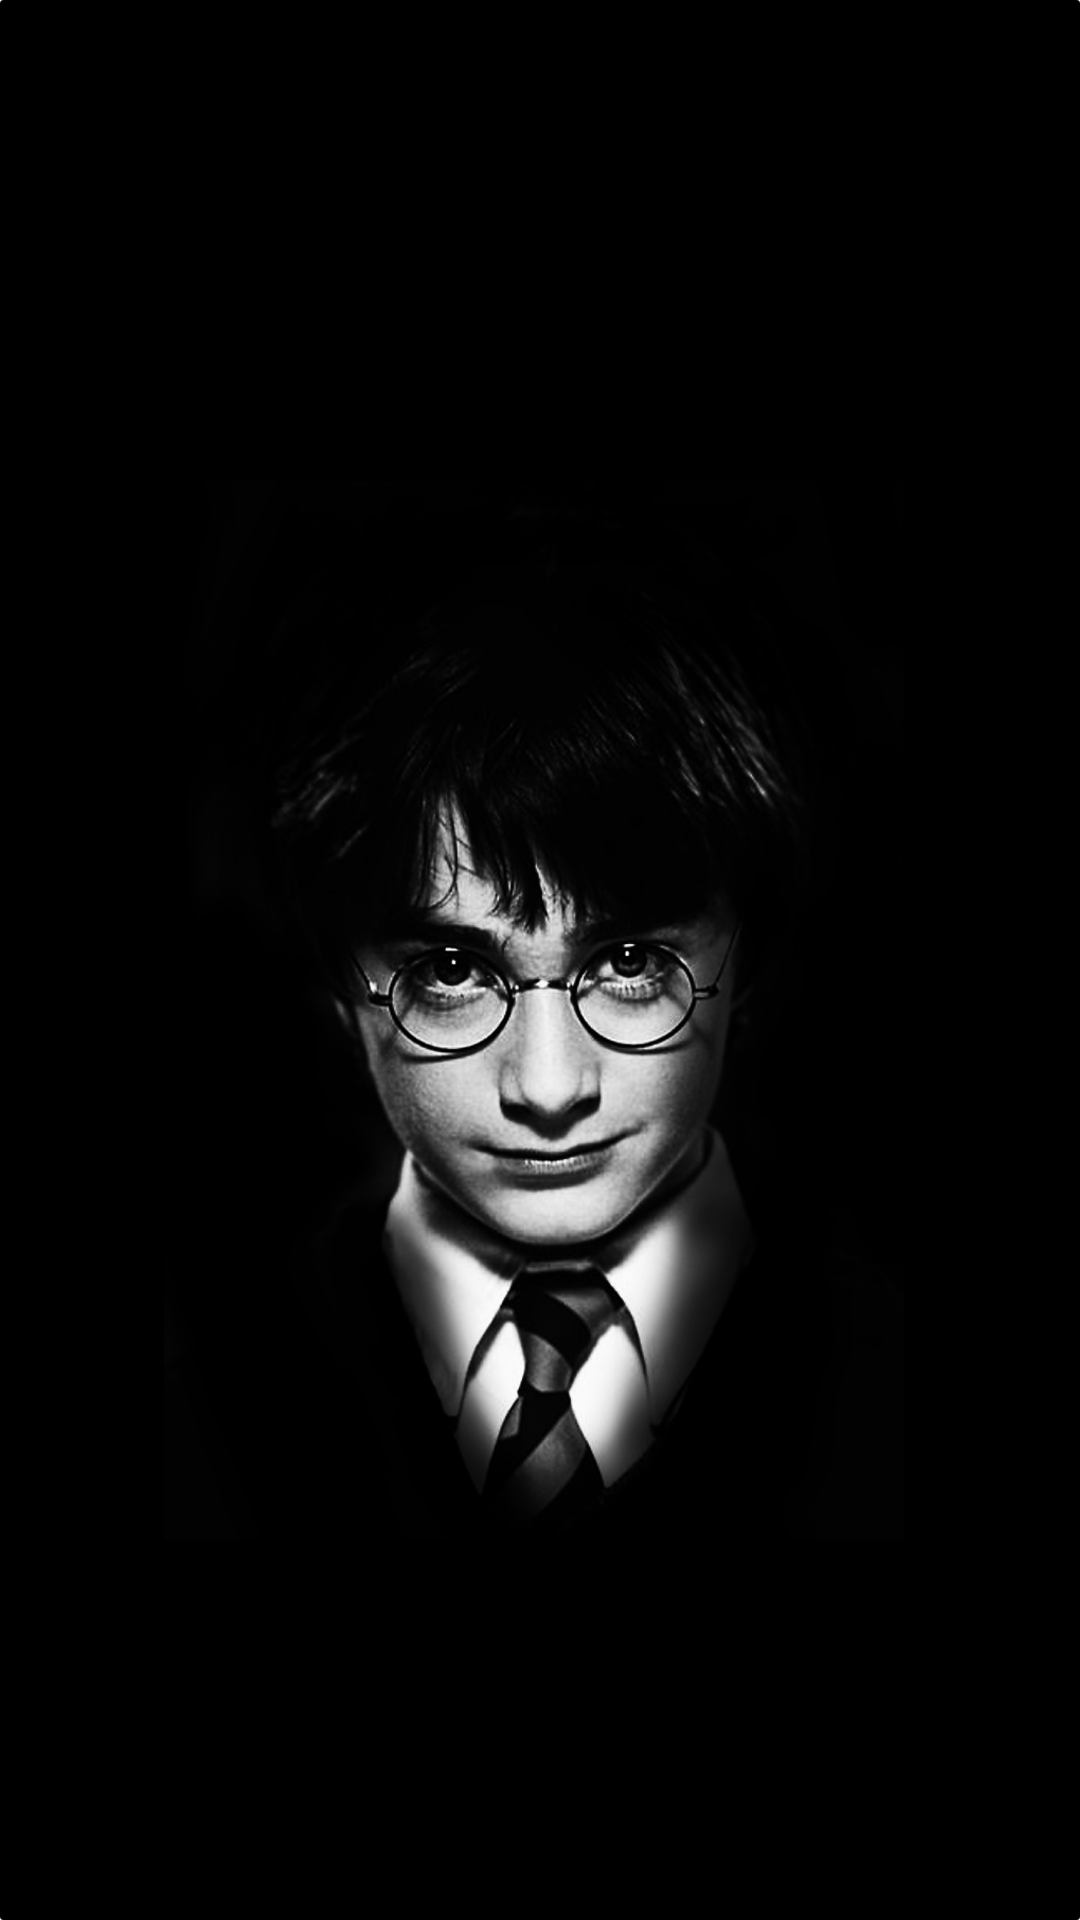 Most Inspiring Wallpaper Harry Potter Cool - harry-potter-iphone-wallpaper-19  Best Photo Reference_975456.jpg